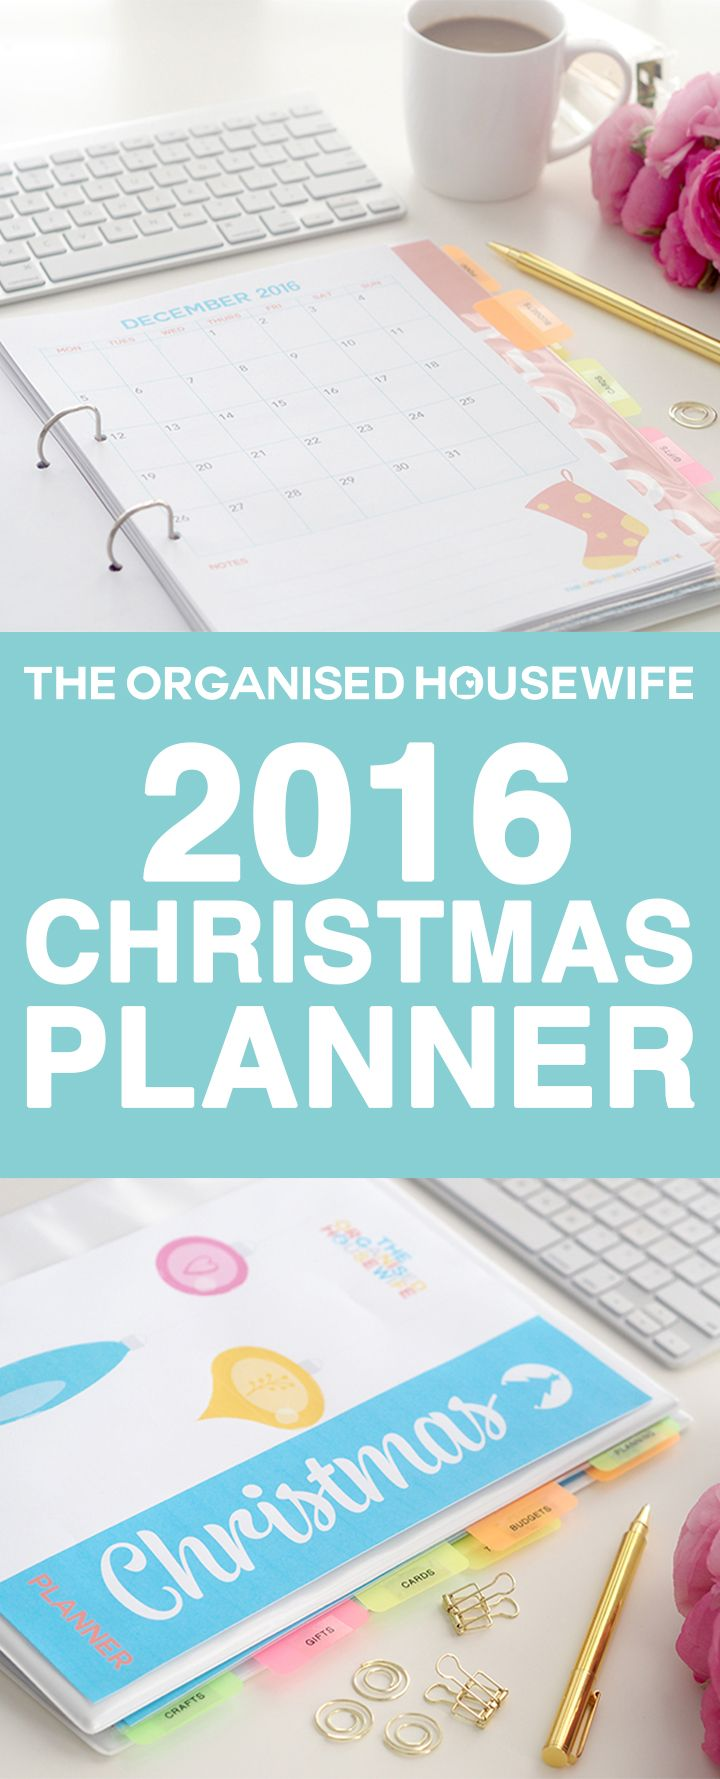 The Organised Housewife 2016 Christmas Planner has a whole new look!  With 70+ pages to keep all your checklists, planners, budget, recipes ideas and more together in one folder. No more losing notes scribbled on the back of envelopes, receipts somewhere on your office desk, this planner will help you cut through the clutter. The Christmas Planner is an instant download so you can start planning and organising everything Christmas today.